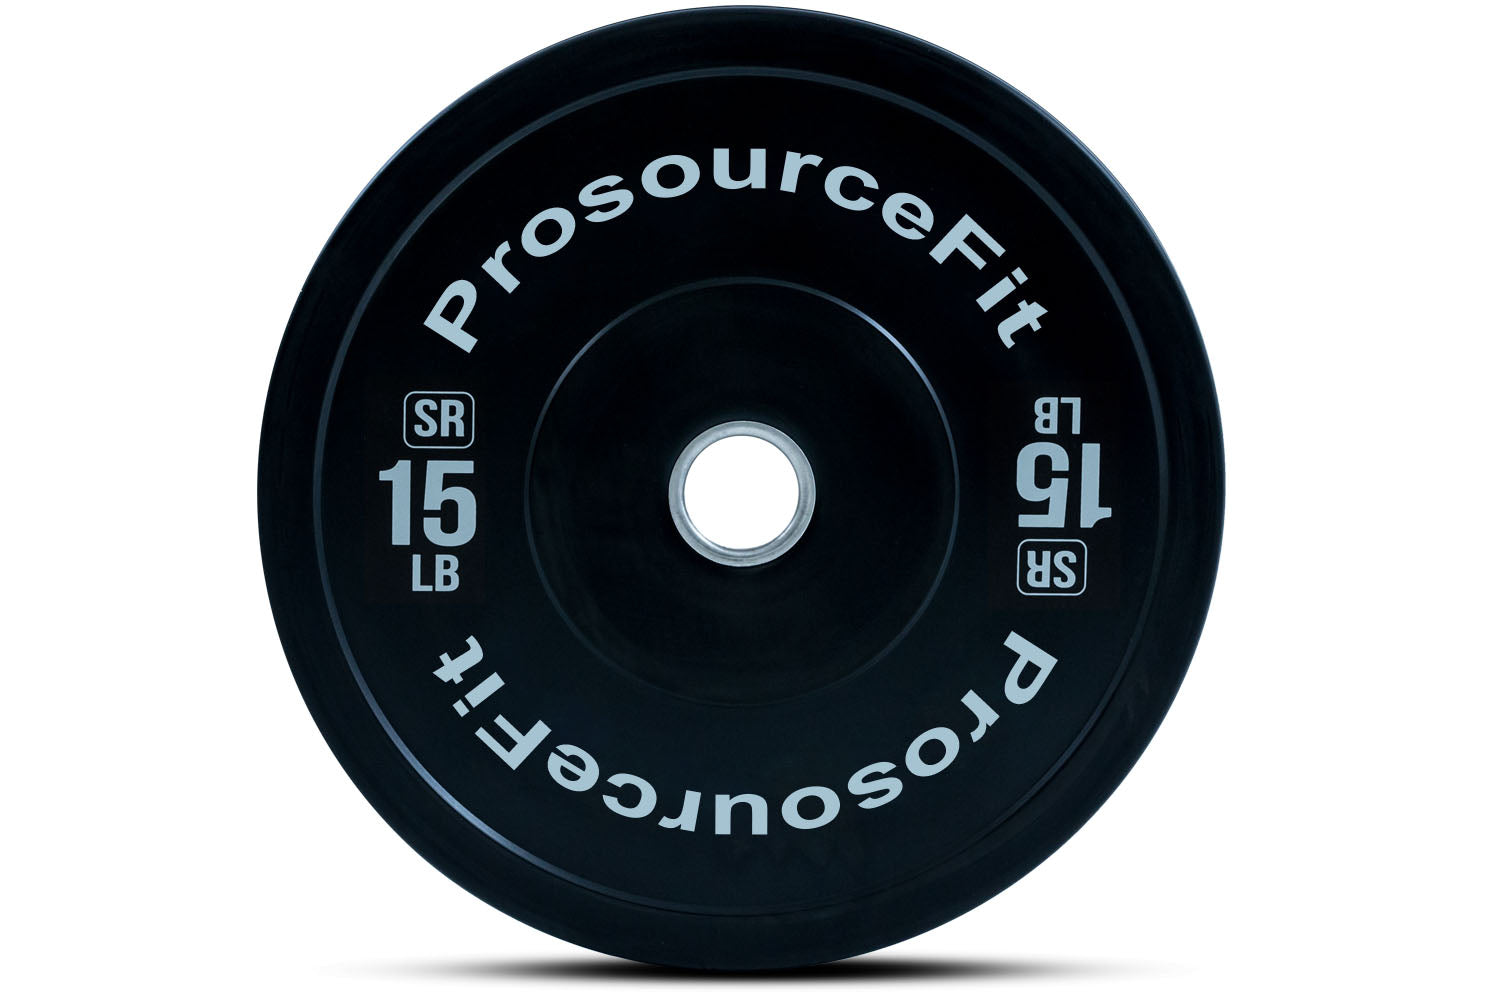 15 lb SR Bumper Plates (Single)